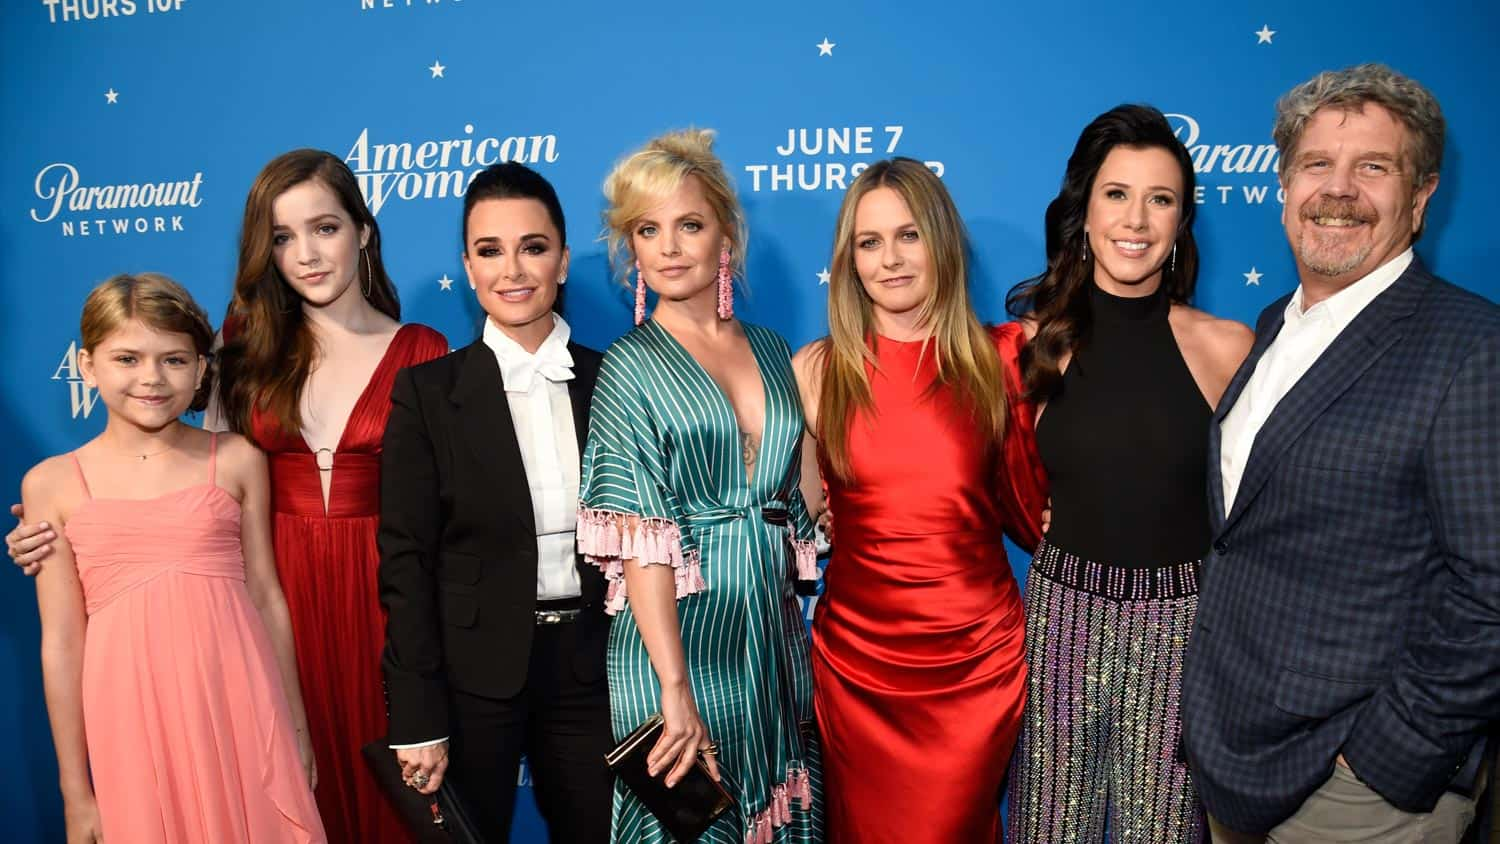 Kyle Richards' Hollywood Upbringing And Producing American Woman - OC Movie Reviews - Movie Reviews, Movie News, Documentary Reviews, Short Films, Short Film Reviews, Trailers, Movie Trailers, Interviews, film reviews, film news, hollywood, indie films, documentaries